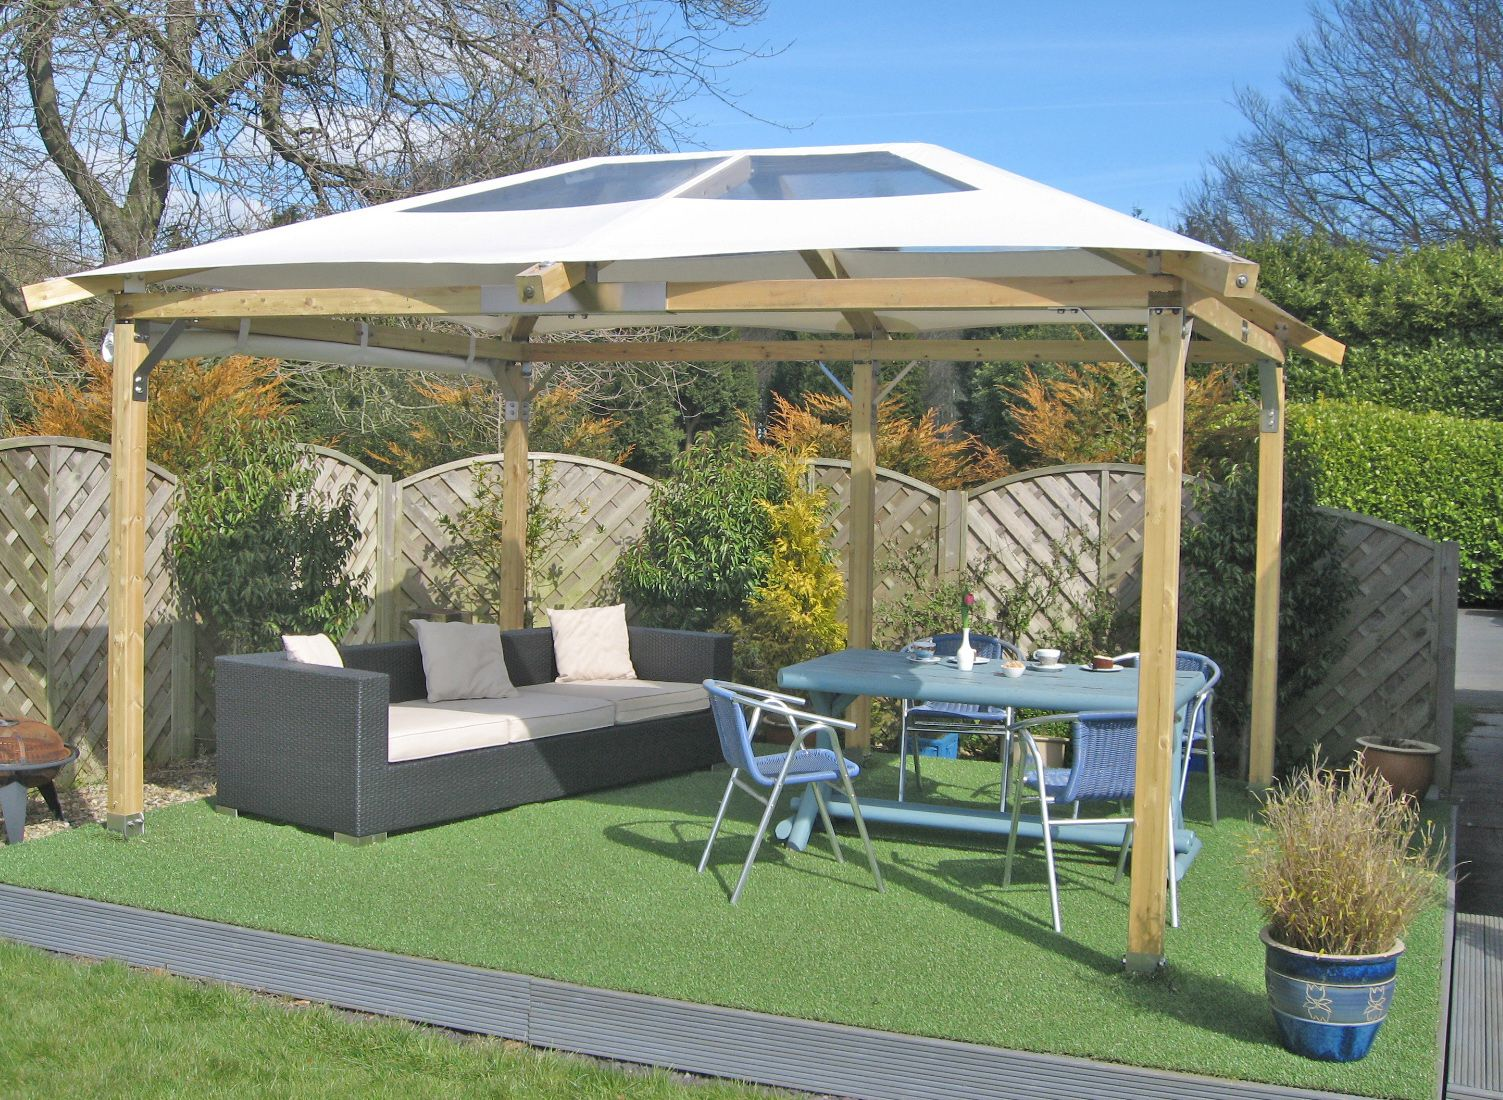 Cooalroo 4 x 4m Charcoal Square Butterfly Semi-Permanent Gazebo | Outdoor living -) | Pinterest | Permanent gazebo Semi permanent and Butterfly & Cooalroo 4 x 4m Charcoal Square Butterfly Semi-Permanent Gazebo ...